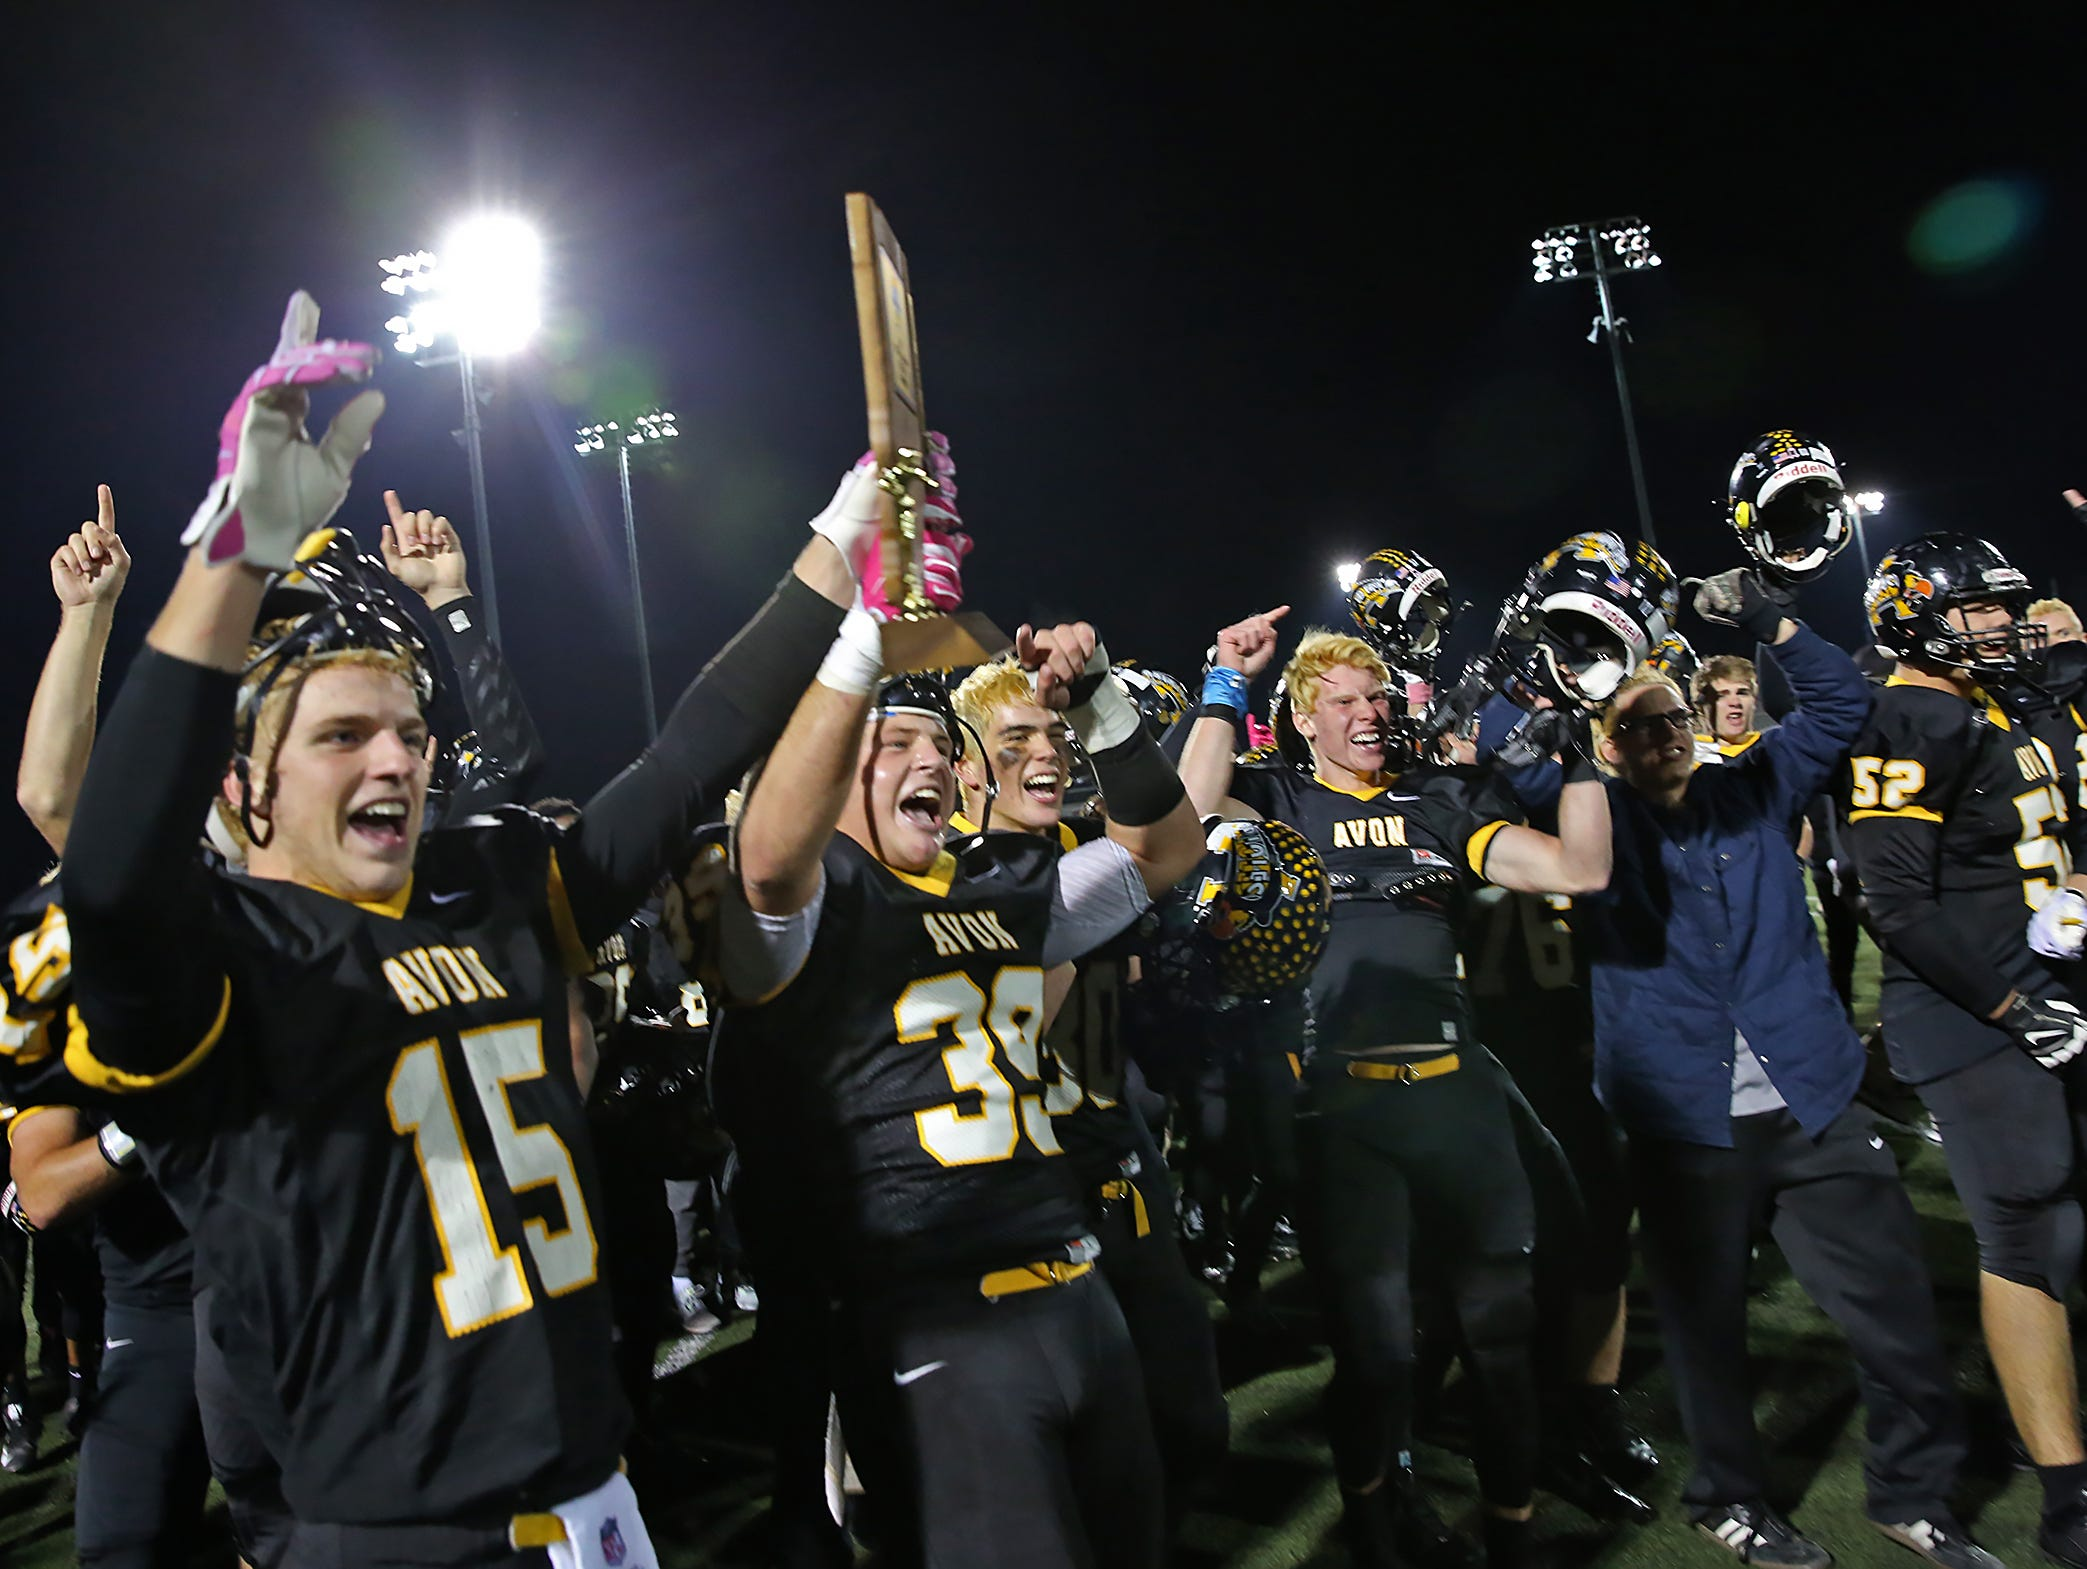 Avon players celebrate the team victory after the Ben Davis at Avon sectional championship, Friday, October 30, 2015. Avon won 27-22.